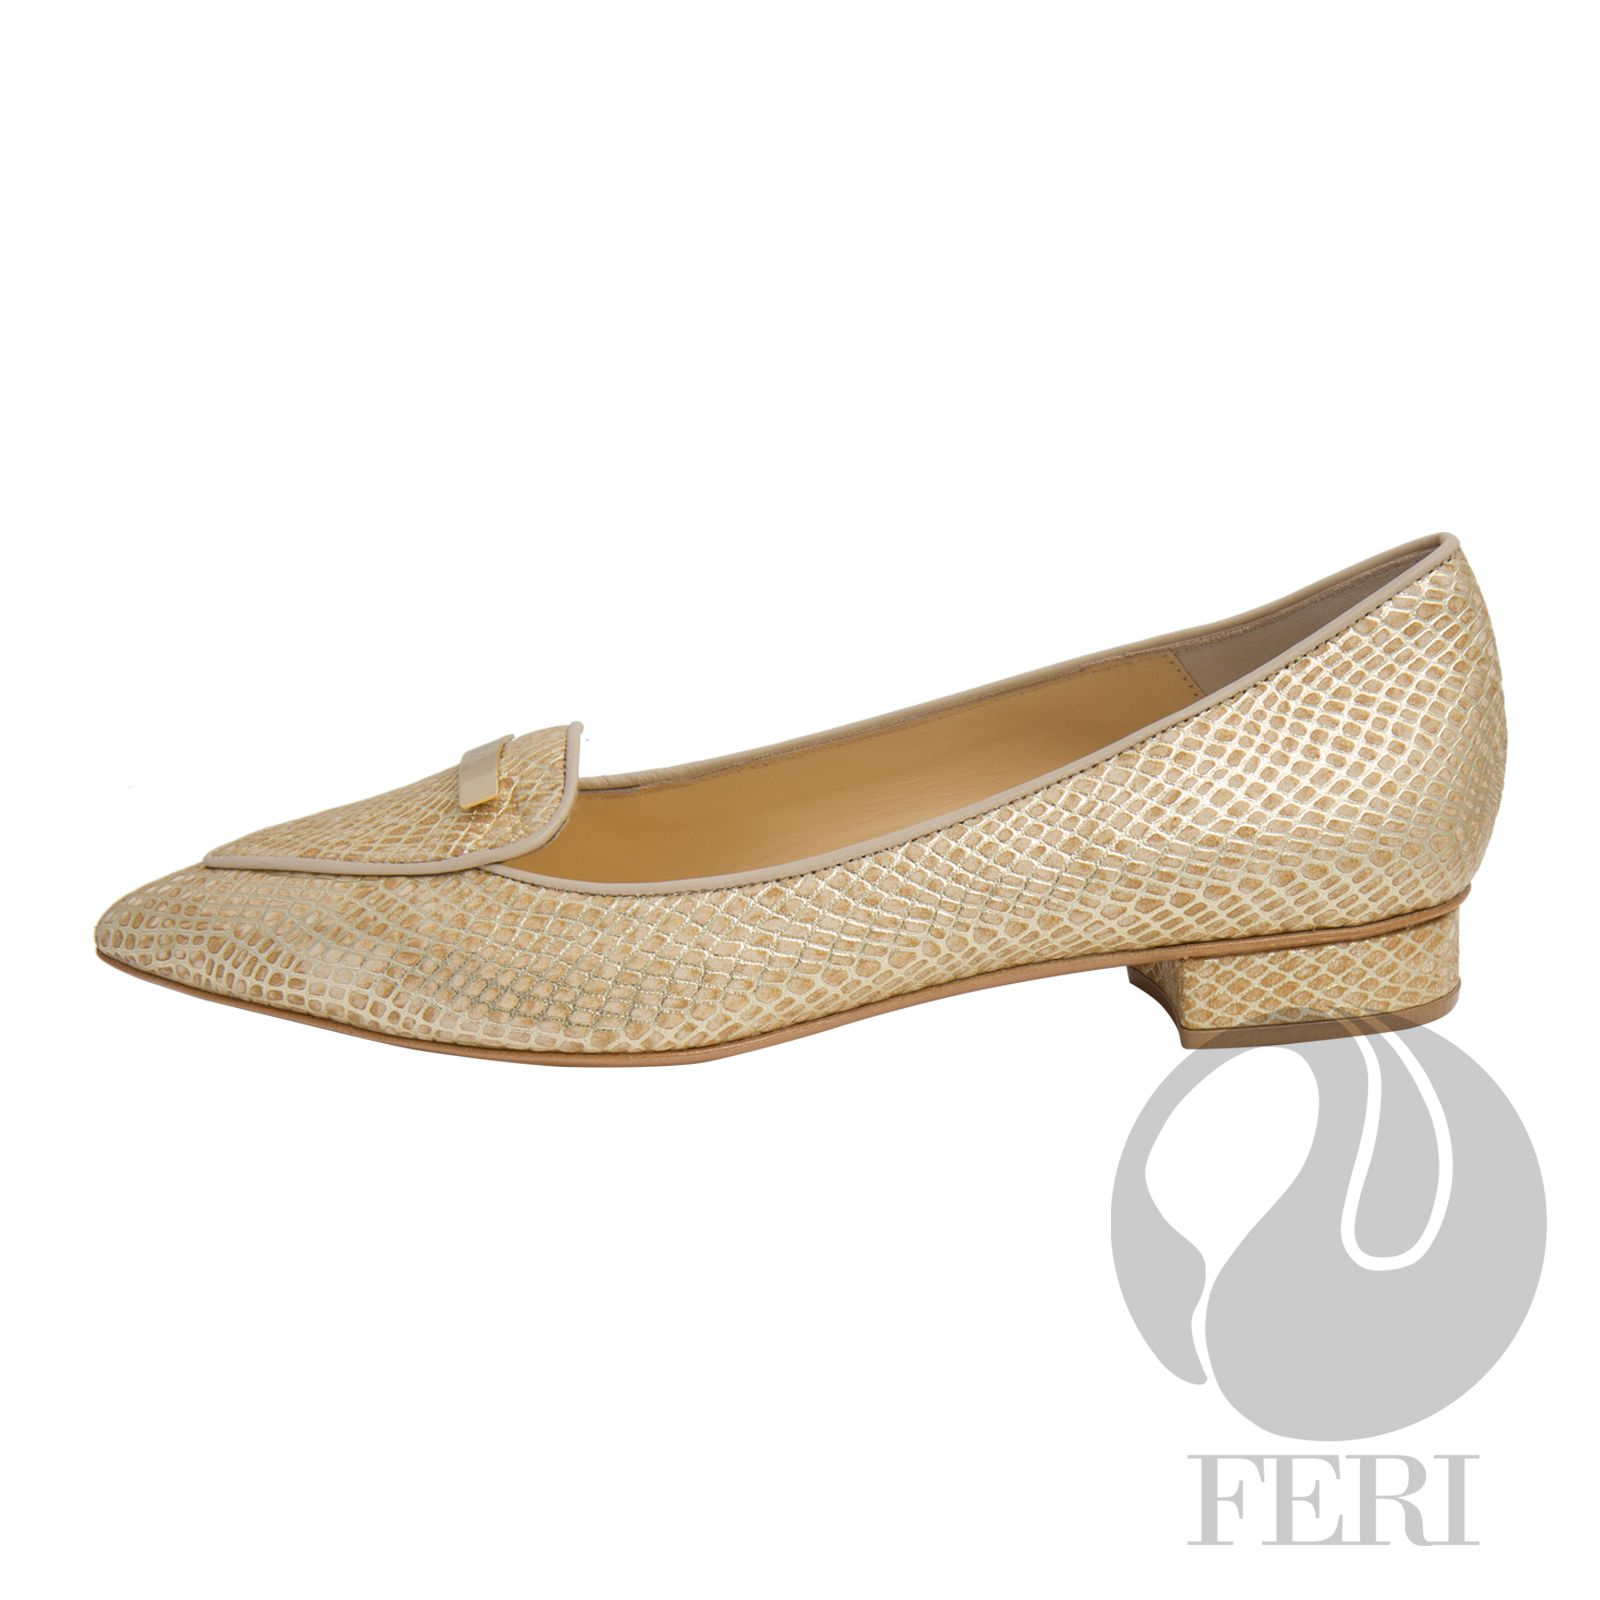 Snake skin printed napa leather flat with small heel - Napa leather sole  and insole